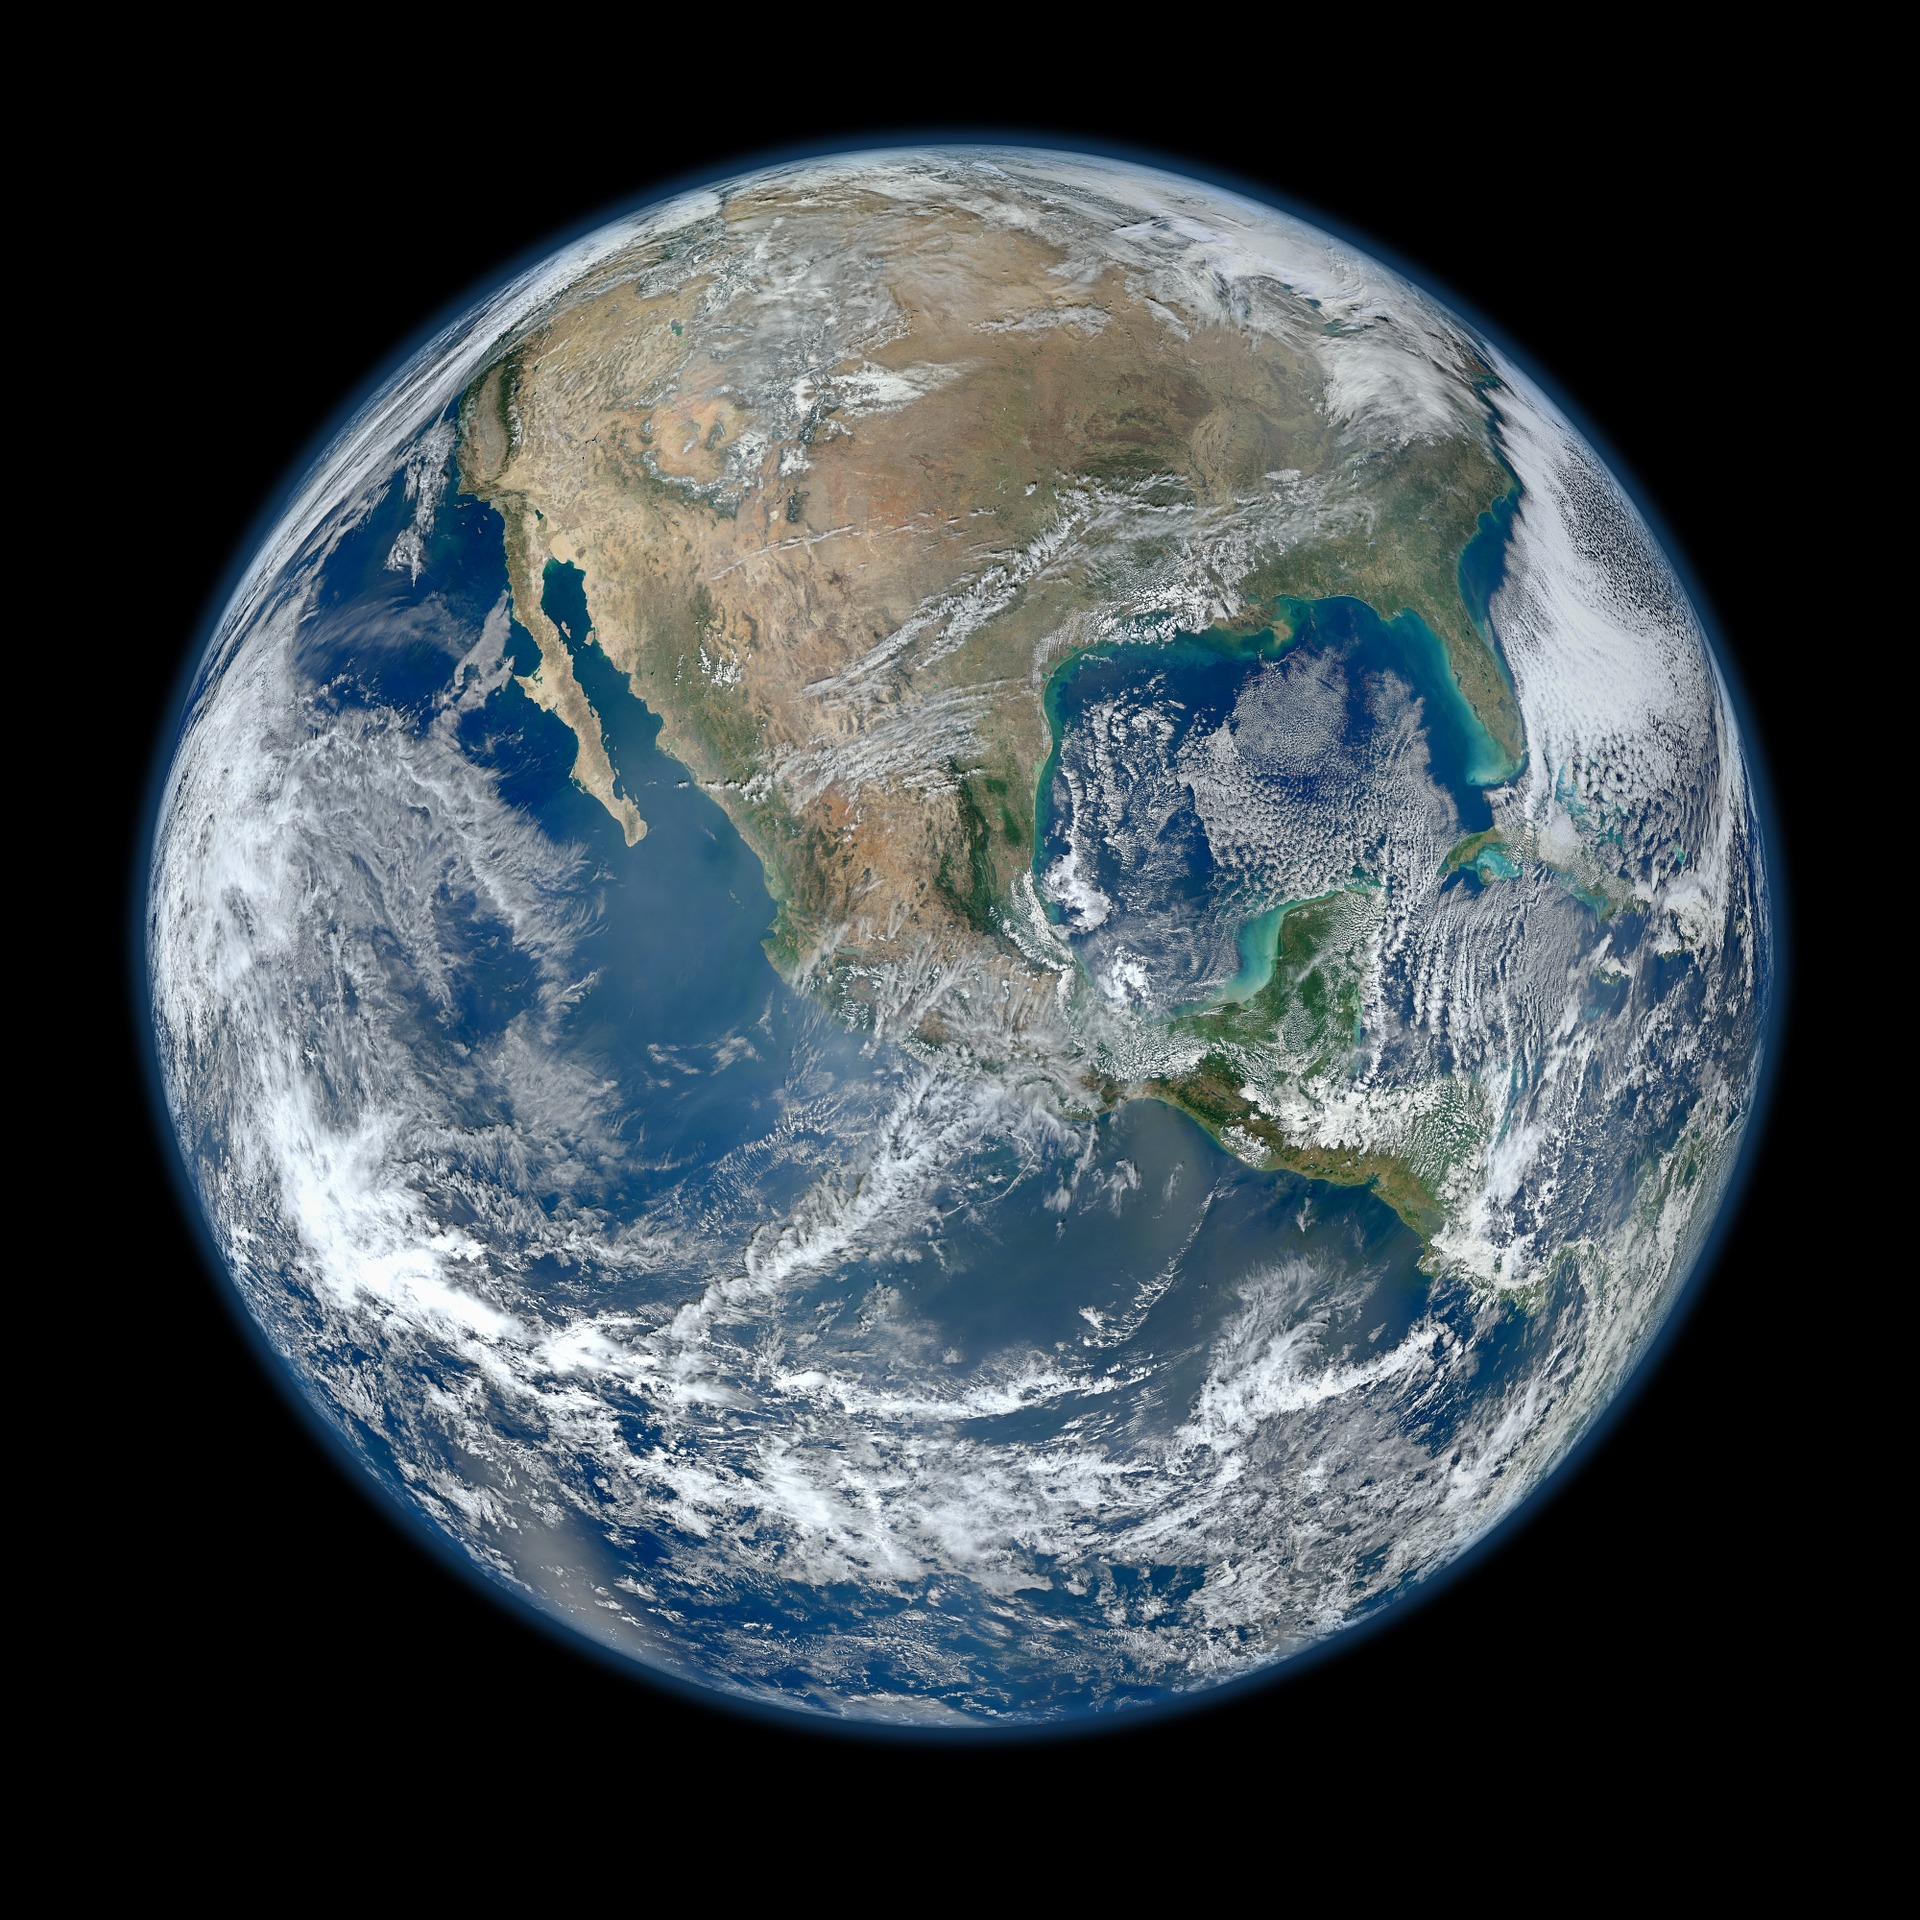 Earth seen from space photo